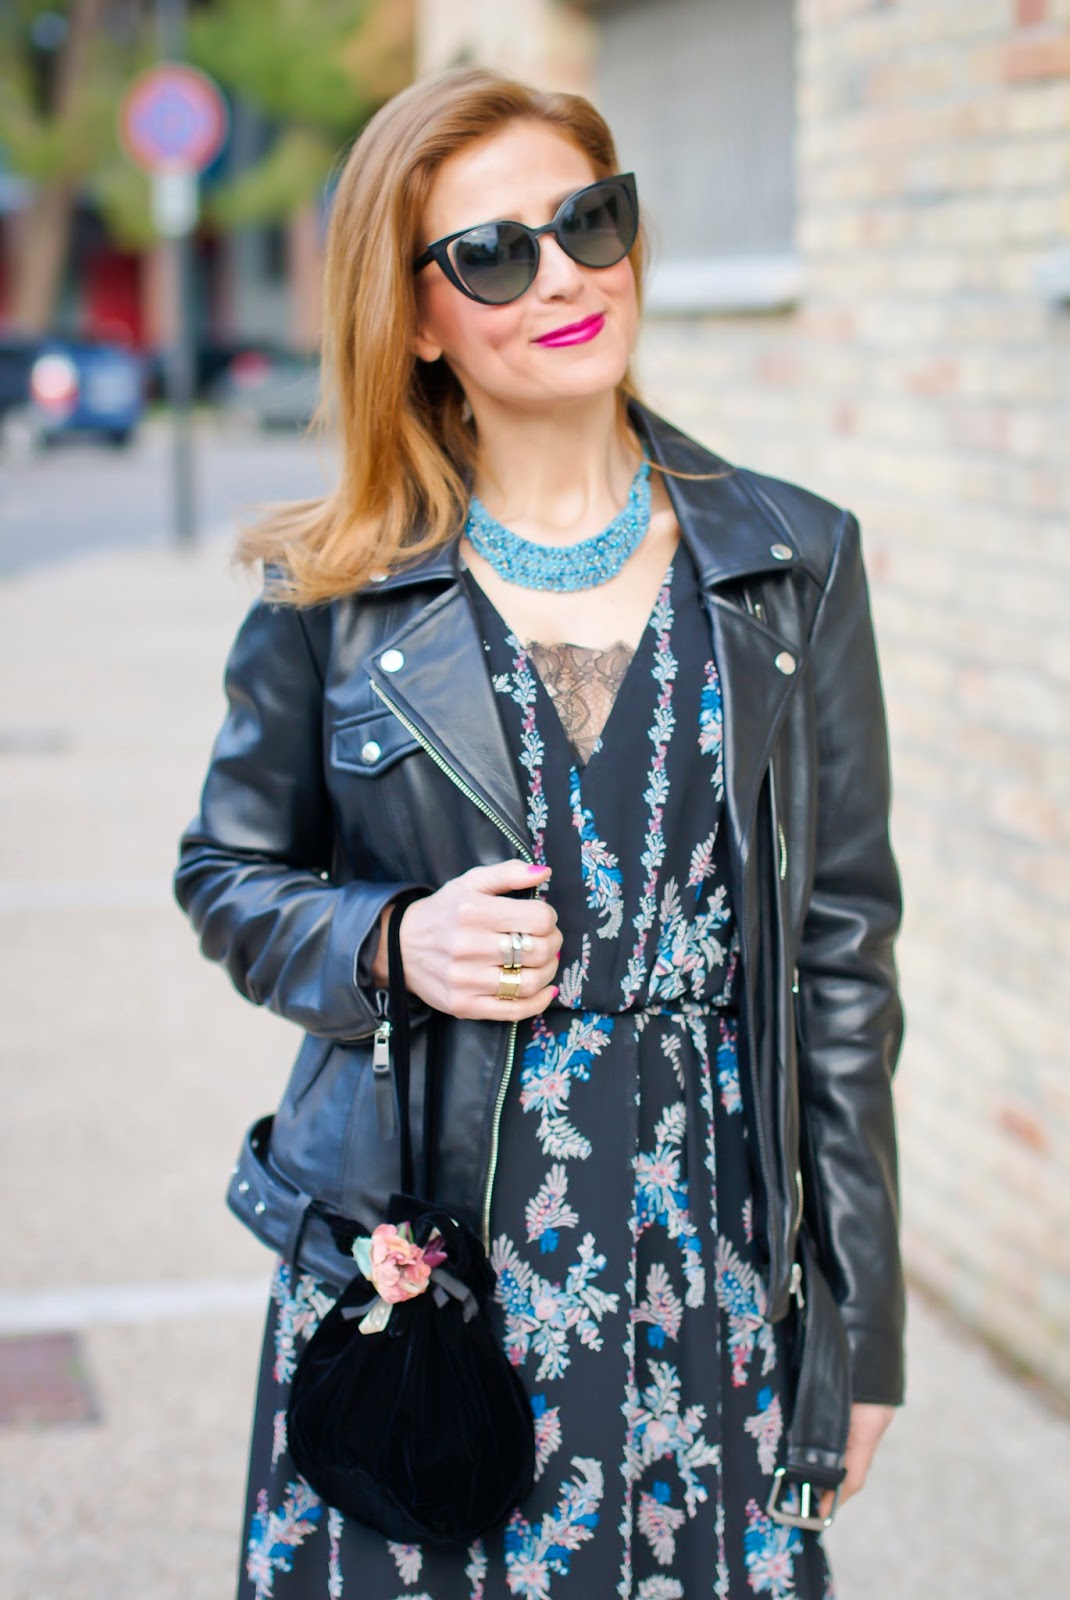 Boho style meets rockstar look with 1.2.3 Paris Babylone dress and Gabriel jacket on Fashion and Cookies fashion blog, fashion blogger style